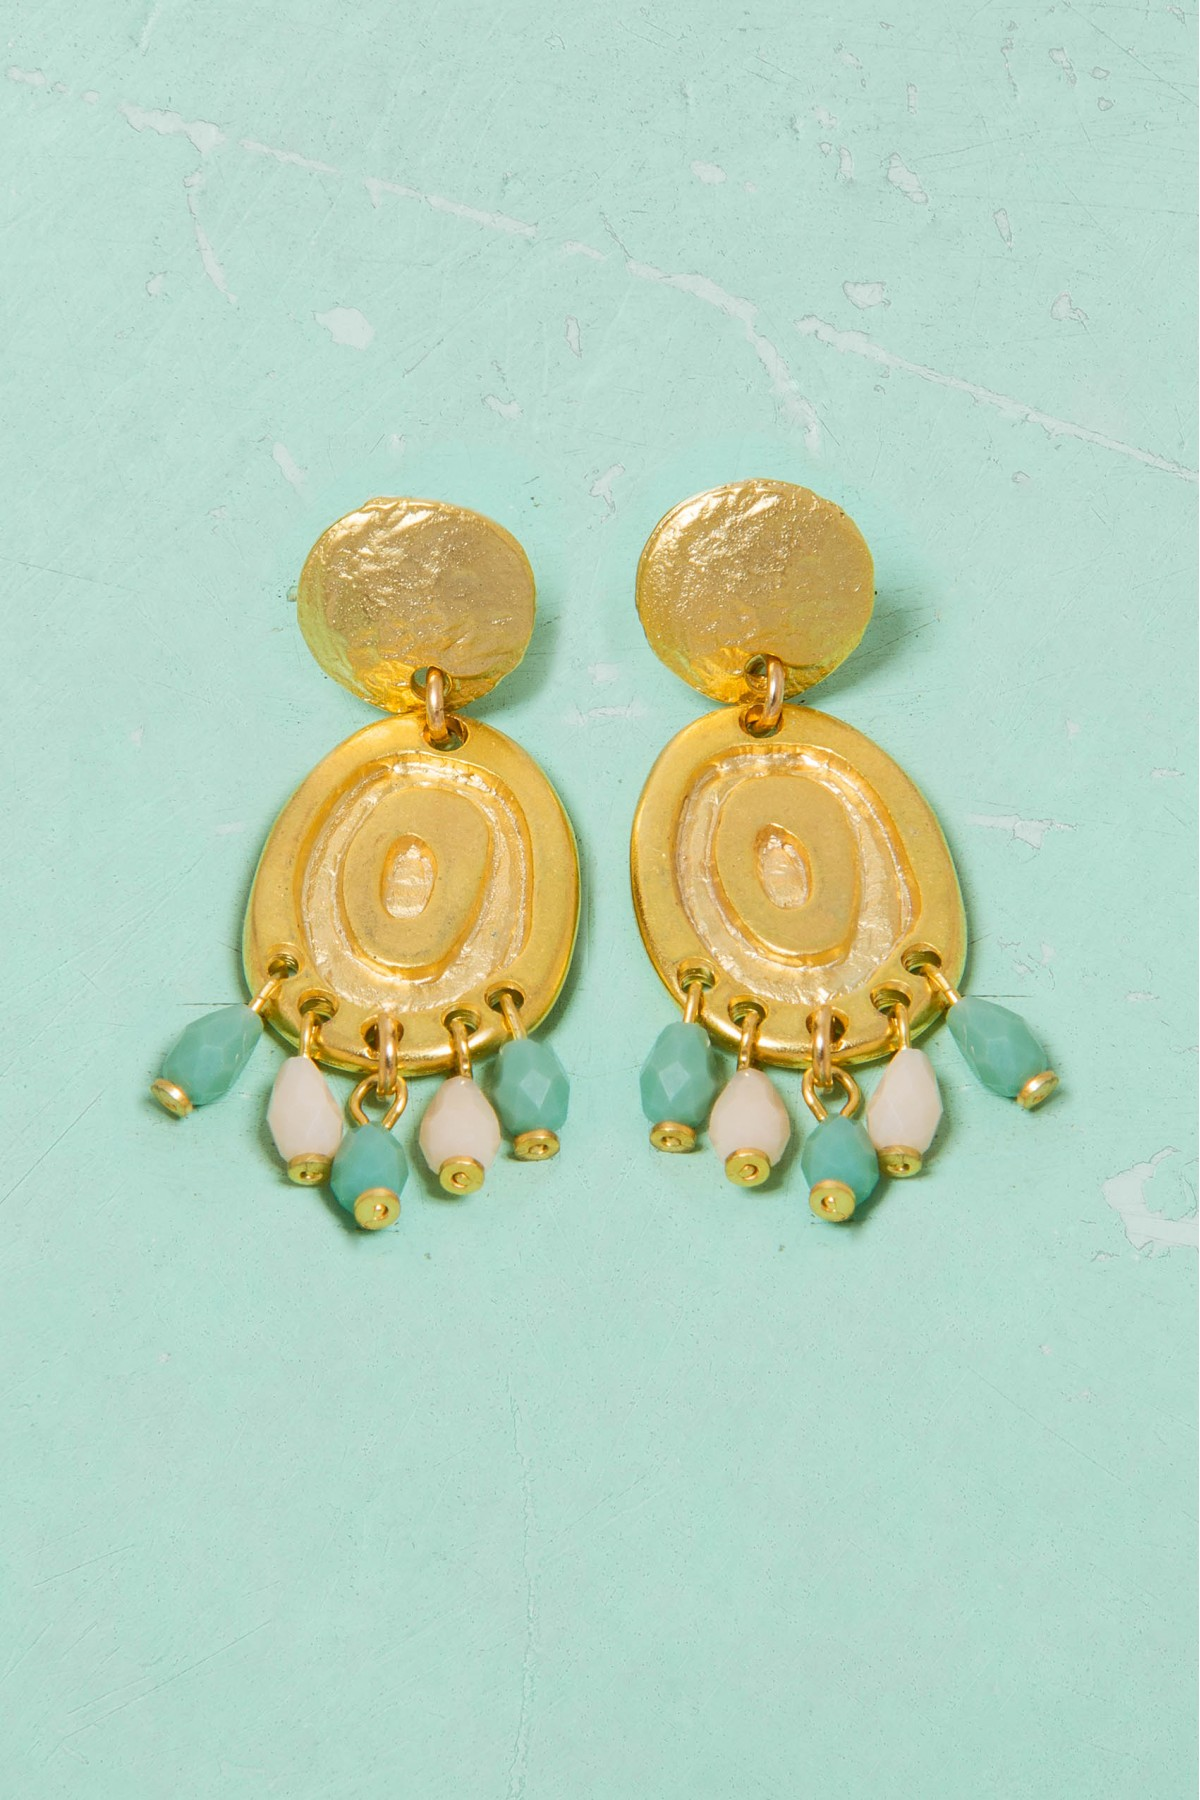 Yucatán Earrings